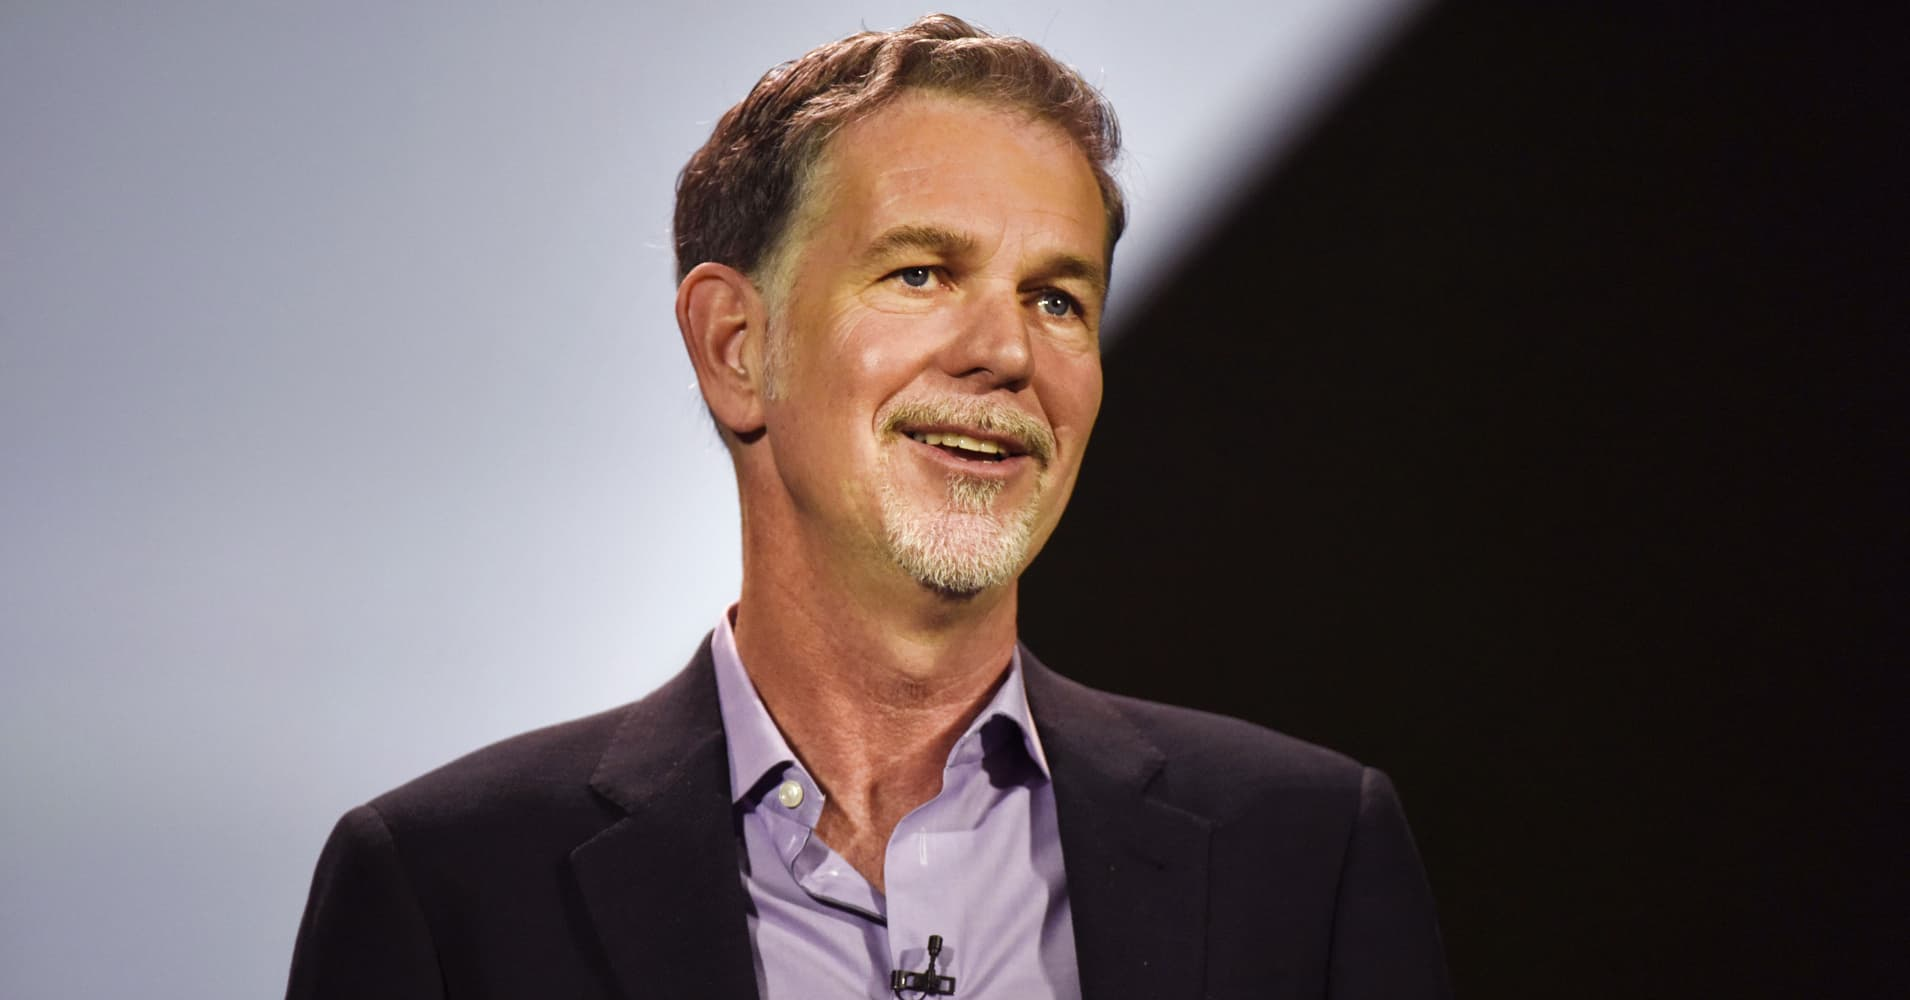 Netflix: We're not worried about Disney or Apple